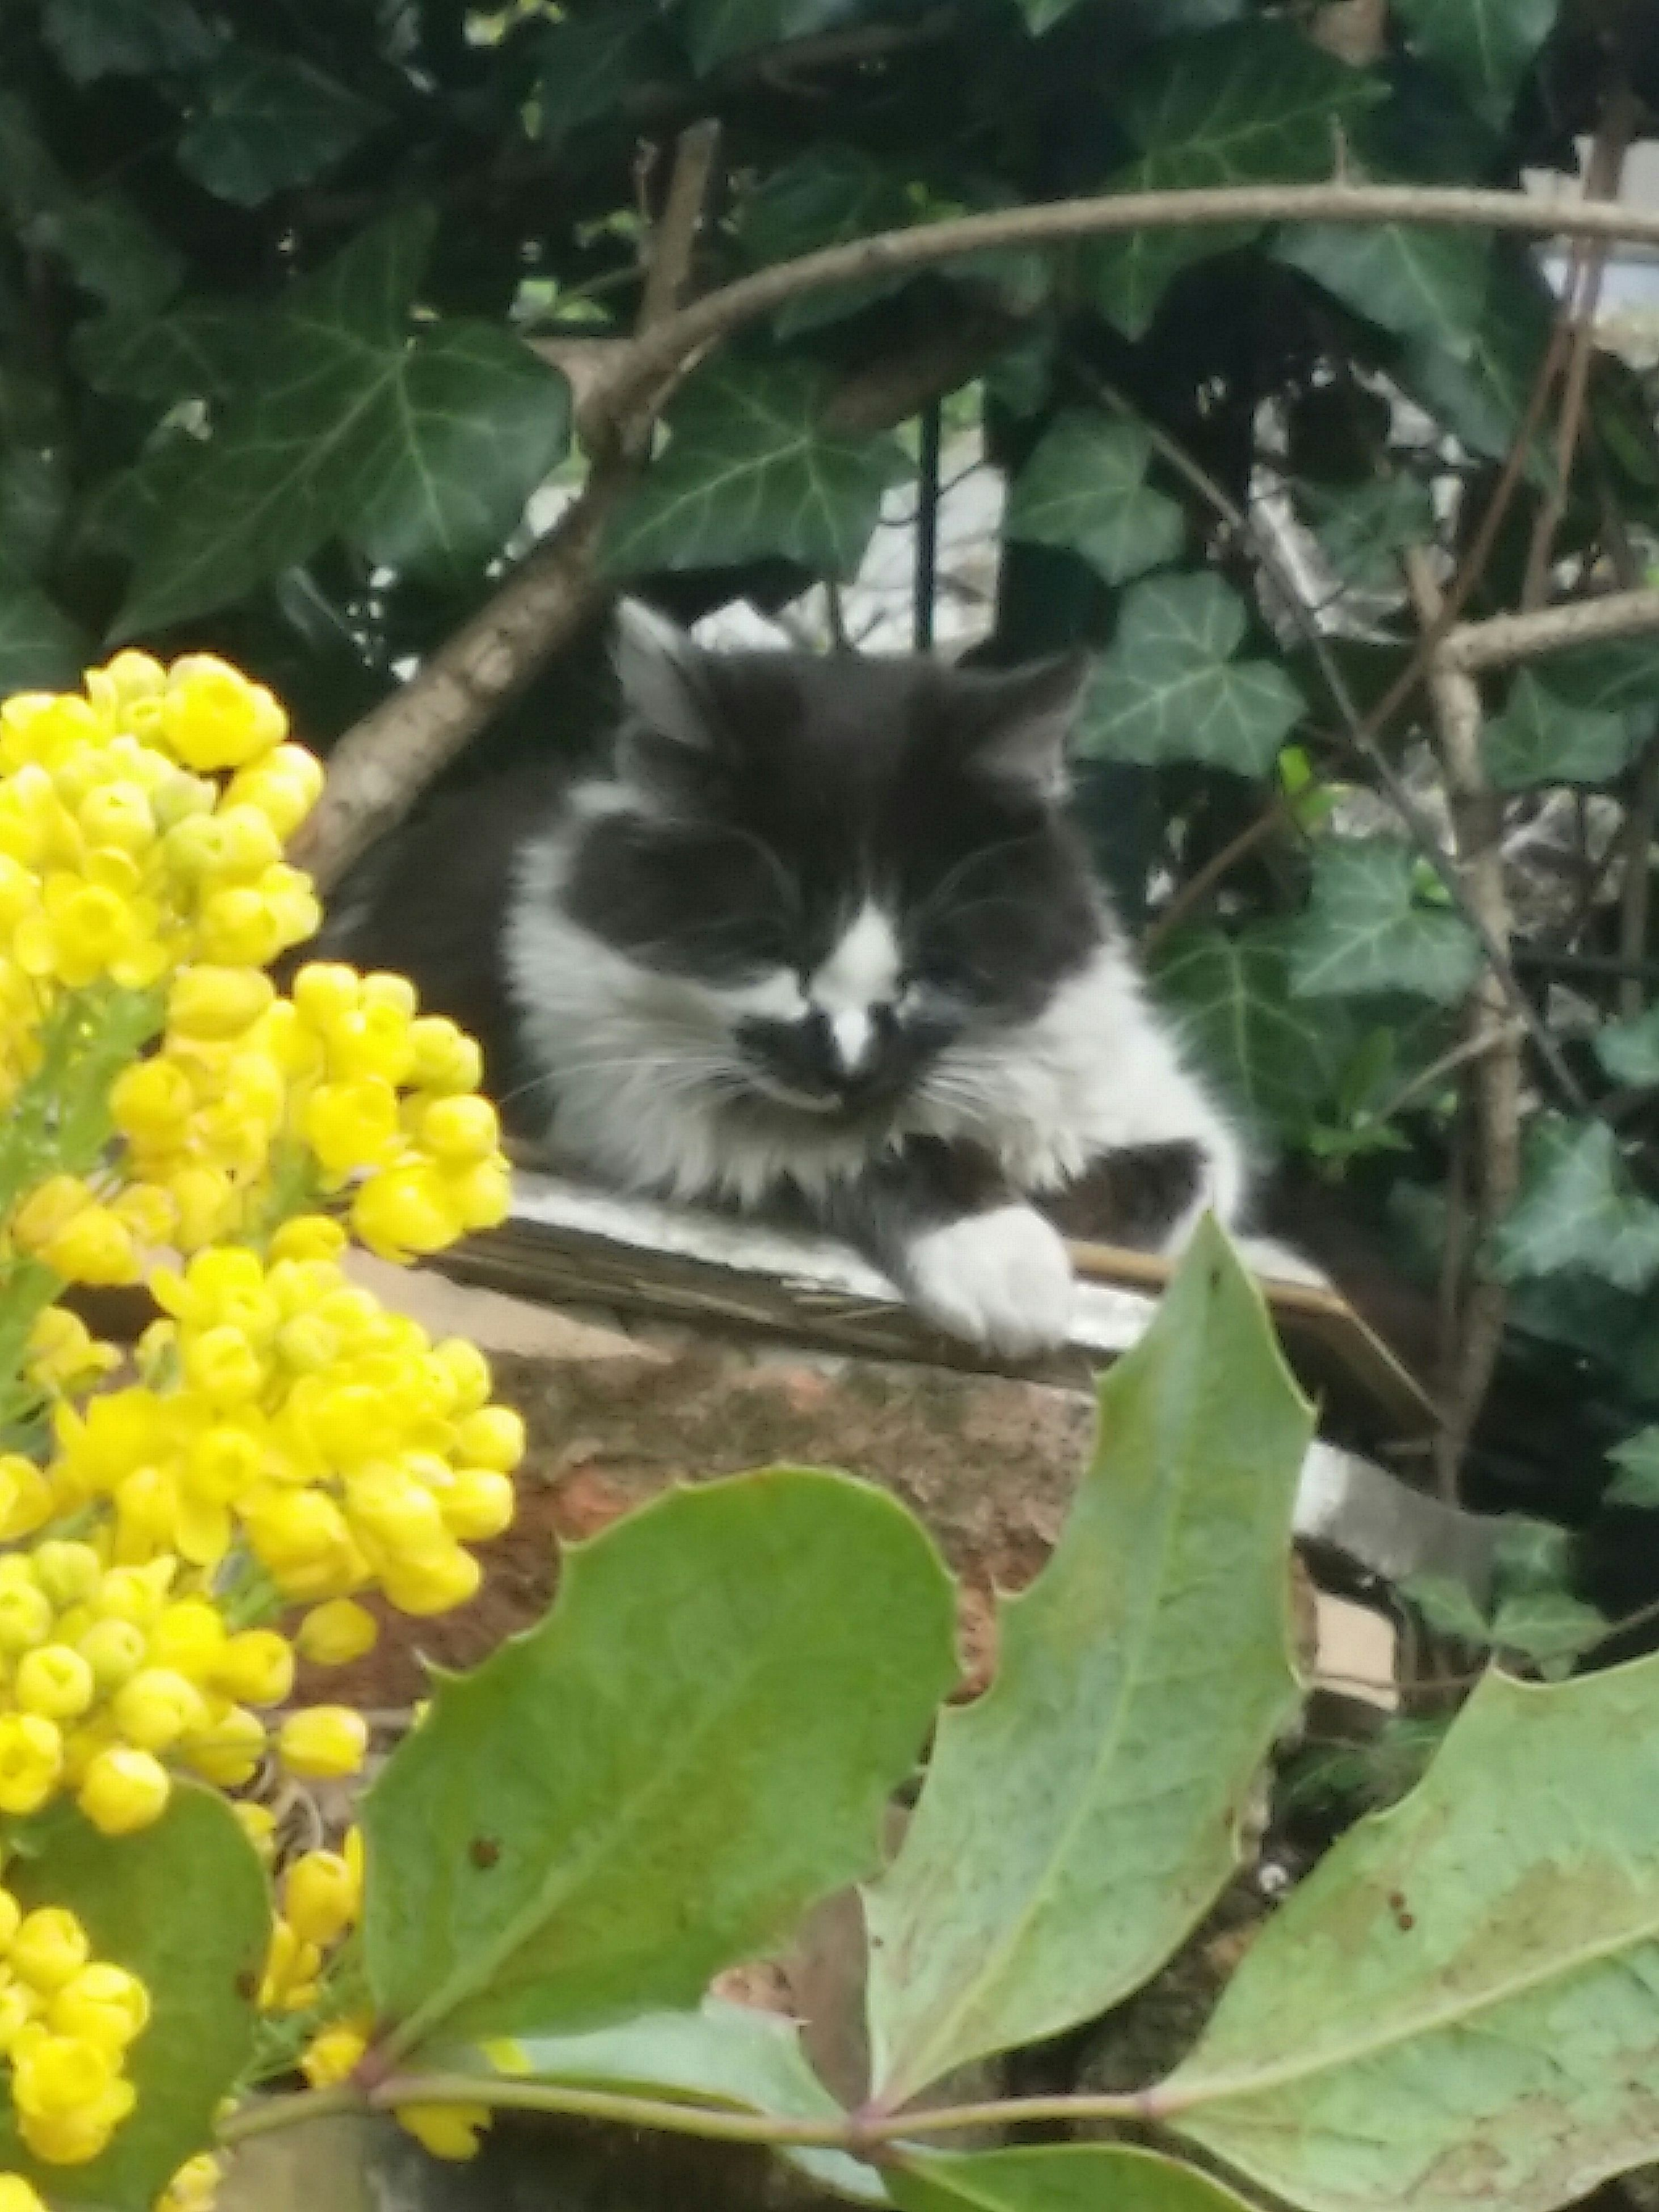 one animal, animal themes, domestic cat, cat, flower, pets, yellow, mammal, leaf, feline, plant, growth, domestic animals, whisker, wildlife, nature, close-up, focus on foreground, animals in the wild, sitting